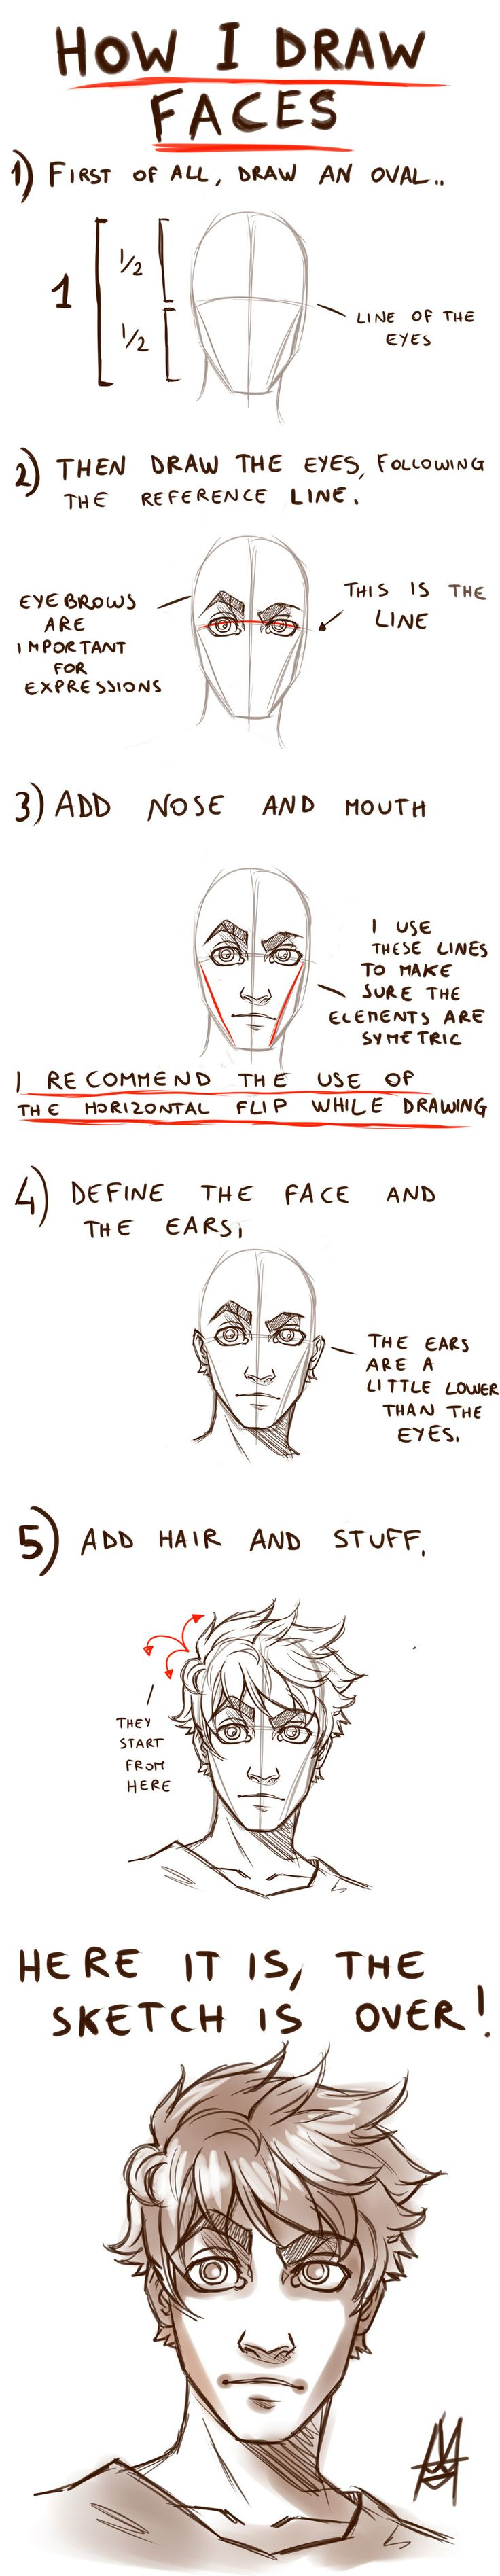 Tutorial HOW TO DRAW A FACE by *MauroIllustrator on deviantArt || CHARACTER DESIGN REFERENCES